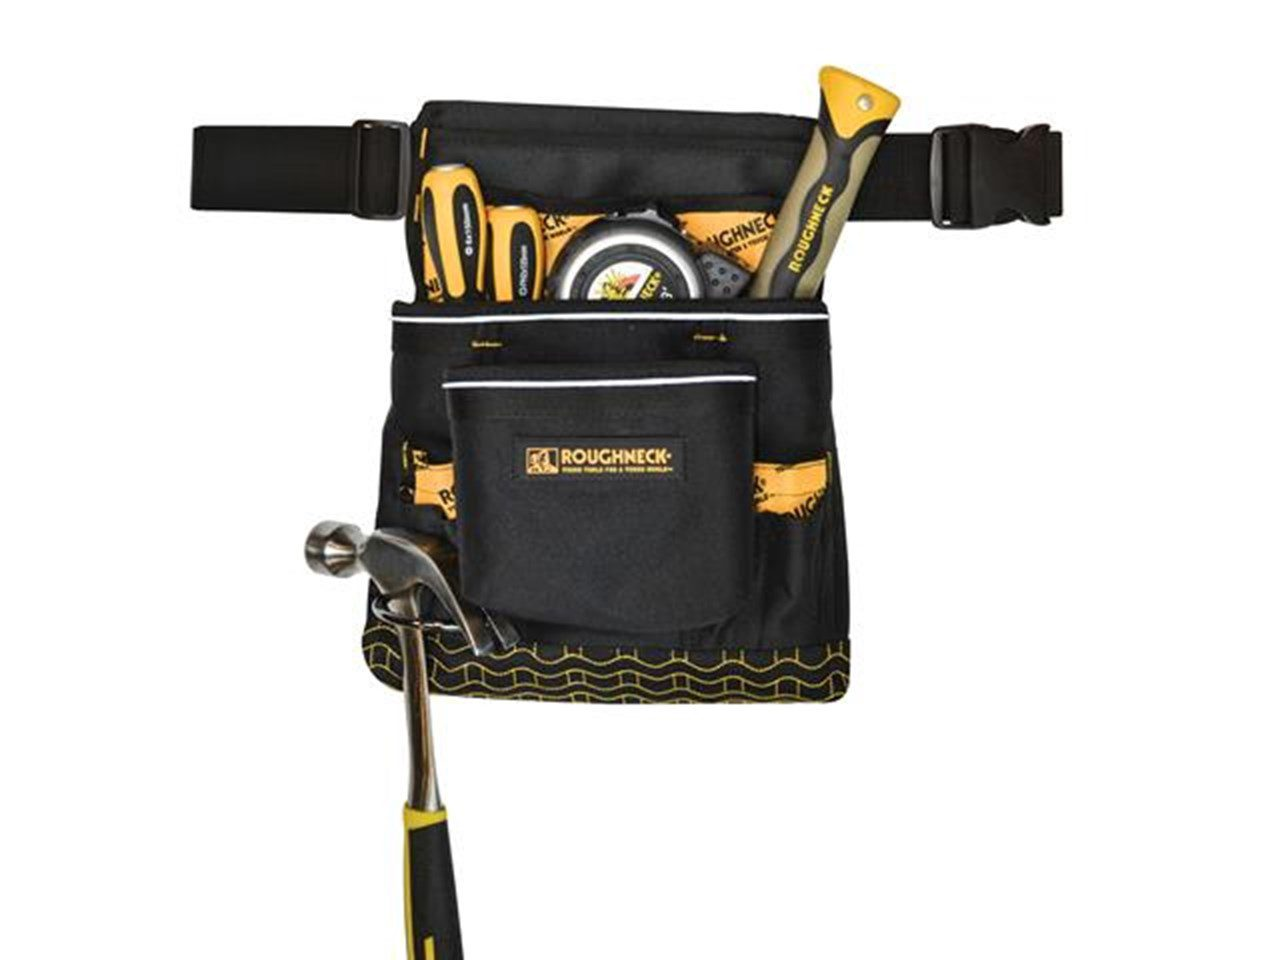 Roughneck Contractor's Pouch with Belt